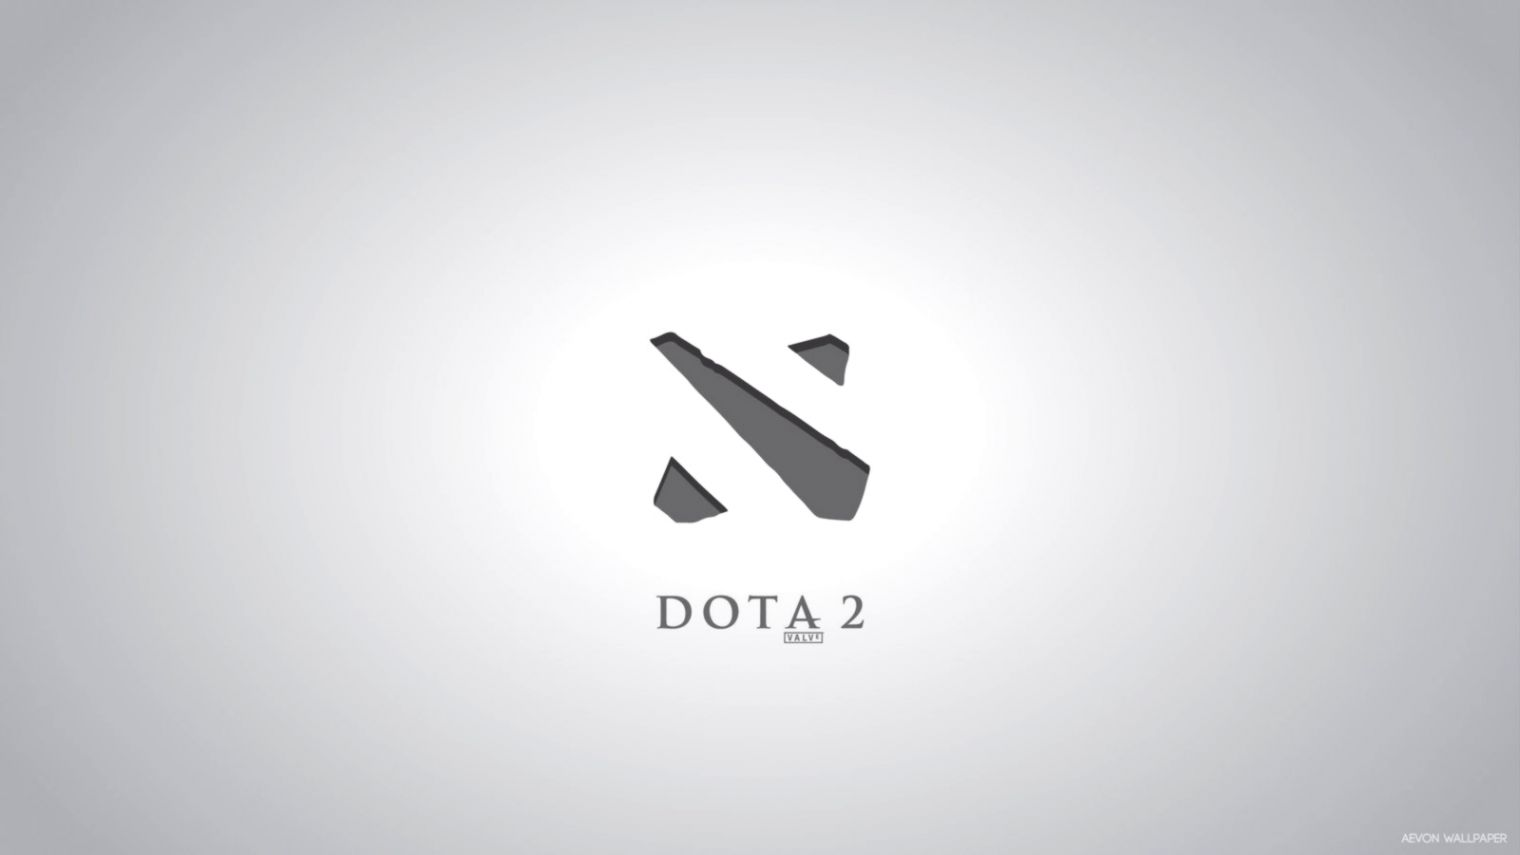 View Original Size Grey Wallpaper Dota 2 Logo Best HD Wallpapers Image Source From This